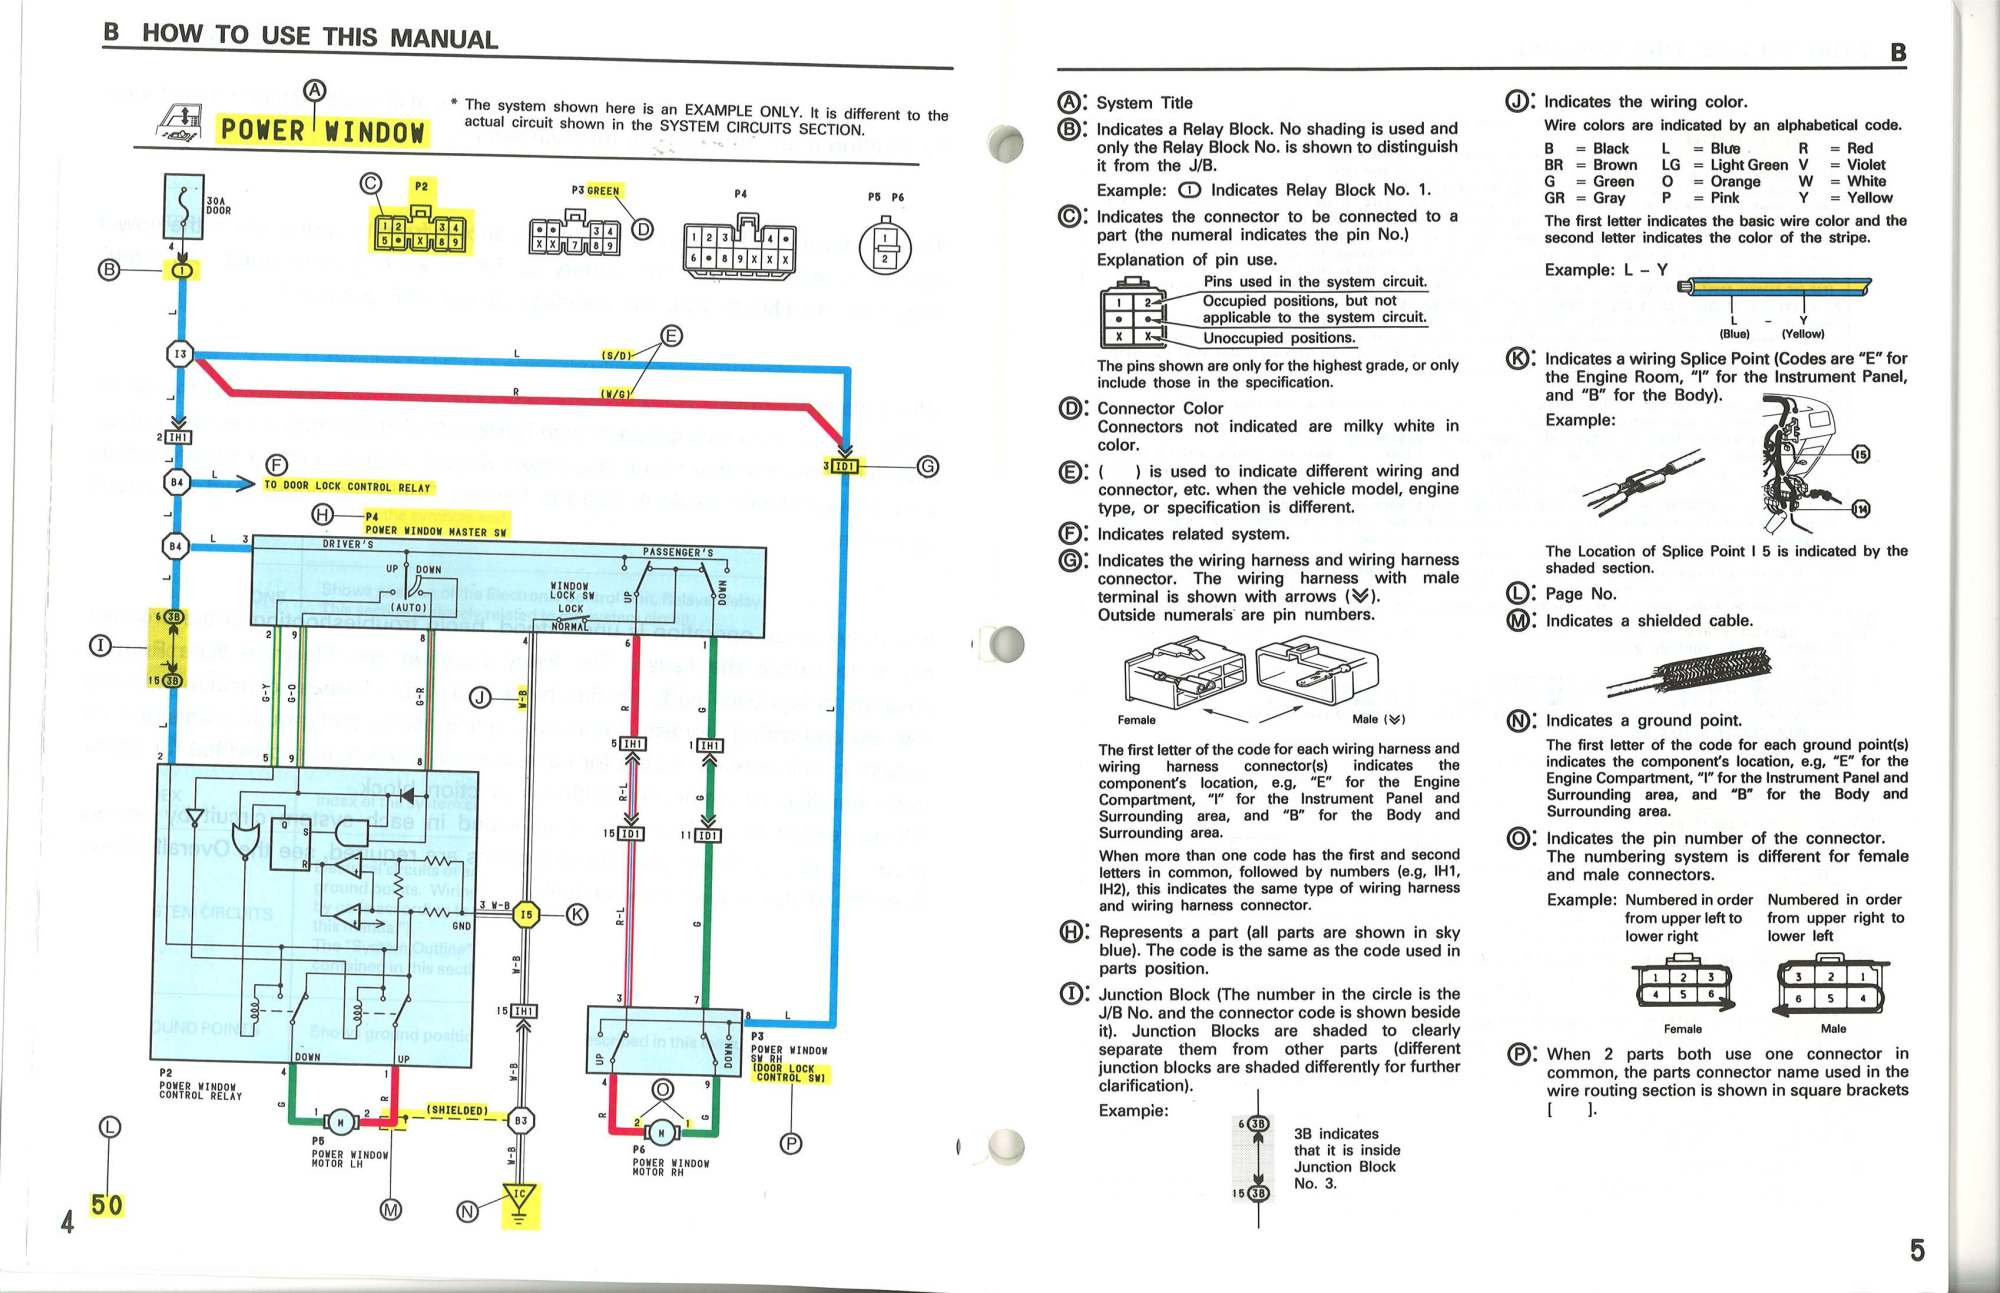 hight resolution of home electrical wiring basics book autowiring mx tl home electrical wiring book home electrical wiring basics